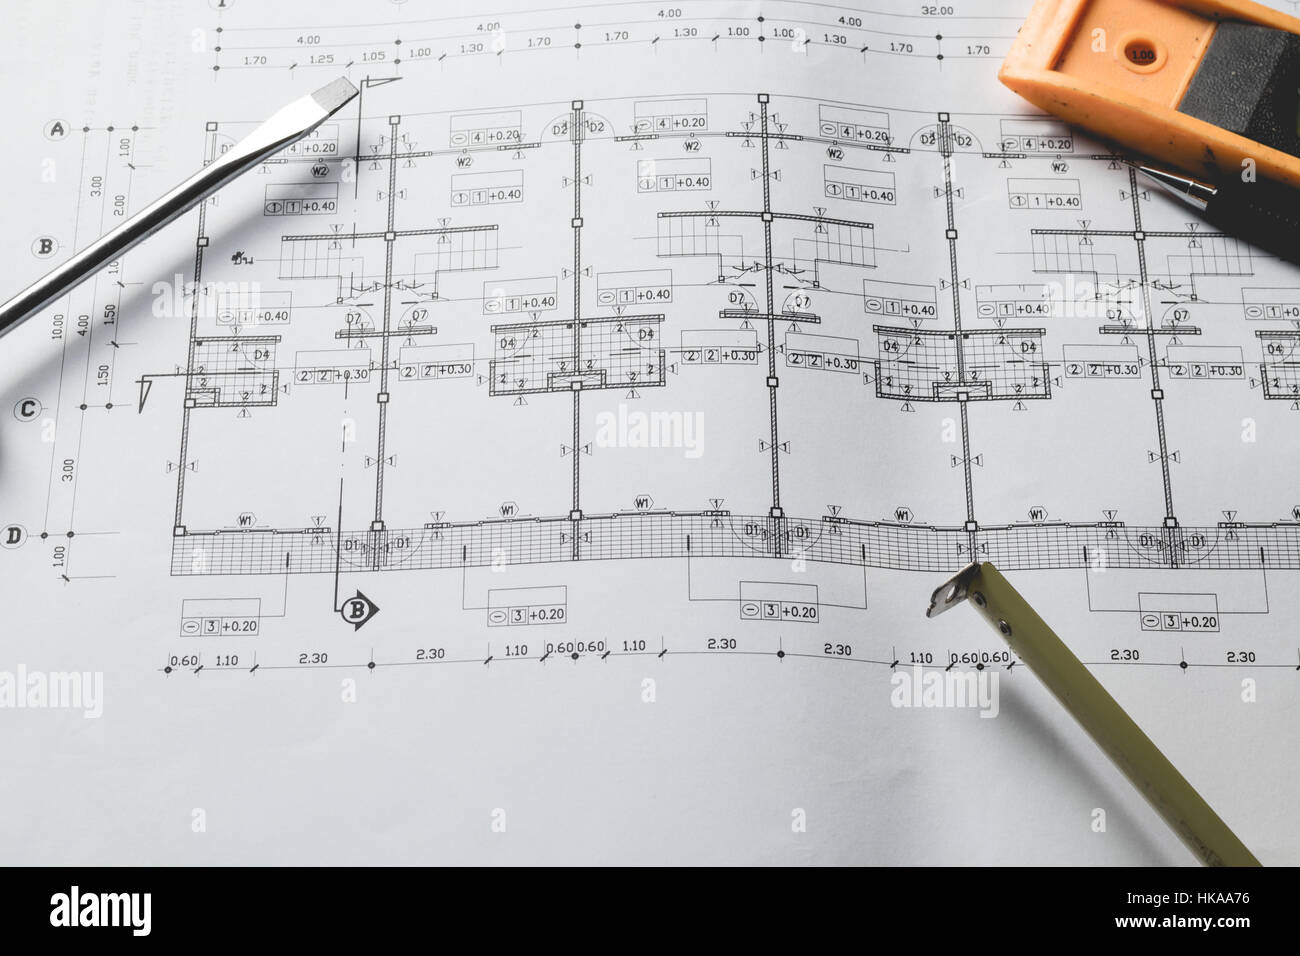 Engineering diagram blueprint paper drafting project sketch stock engineering diagram blueprint paper drafting project sketch architecturalselective focus malvernweather Image collections